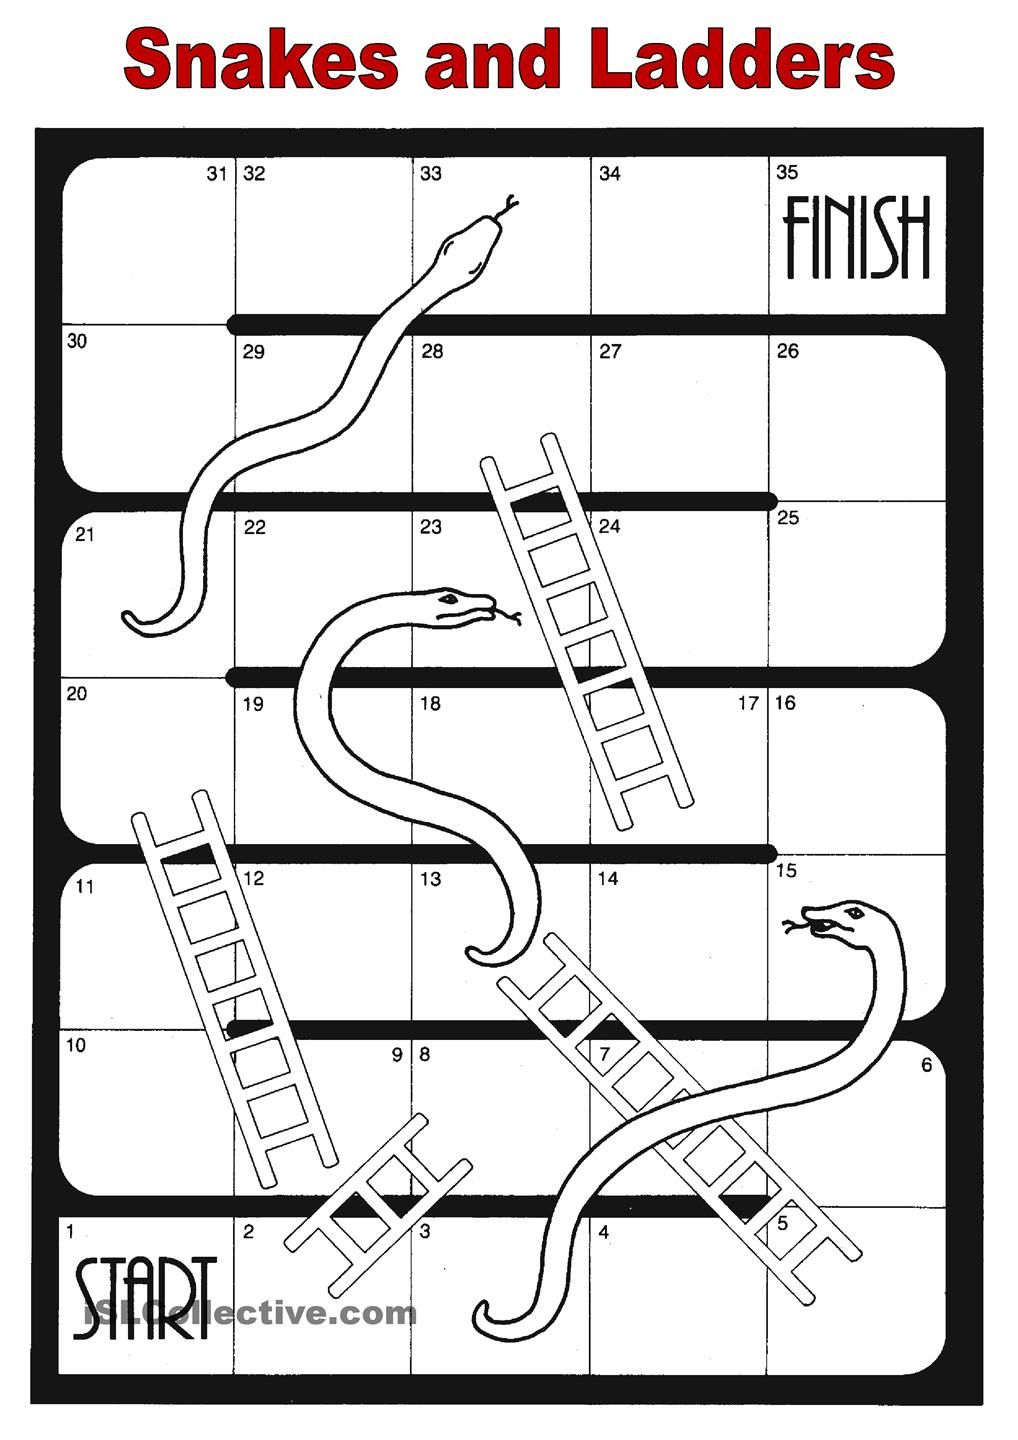 Superb image inside snakes and ladders printable